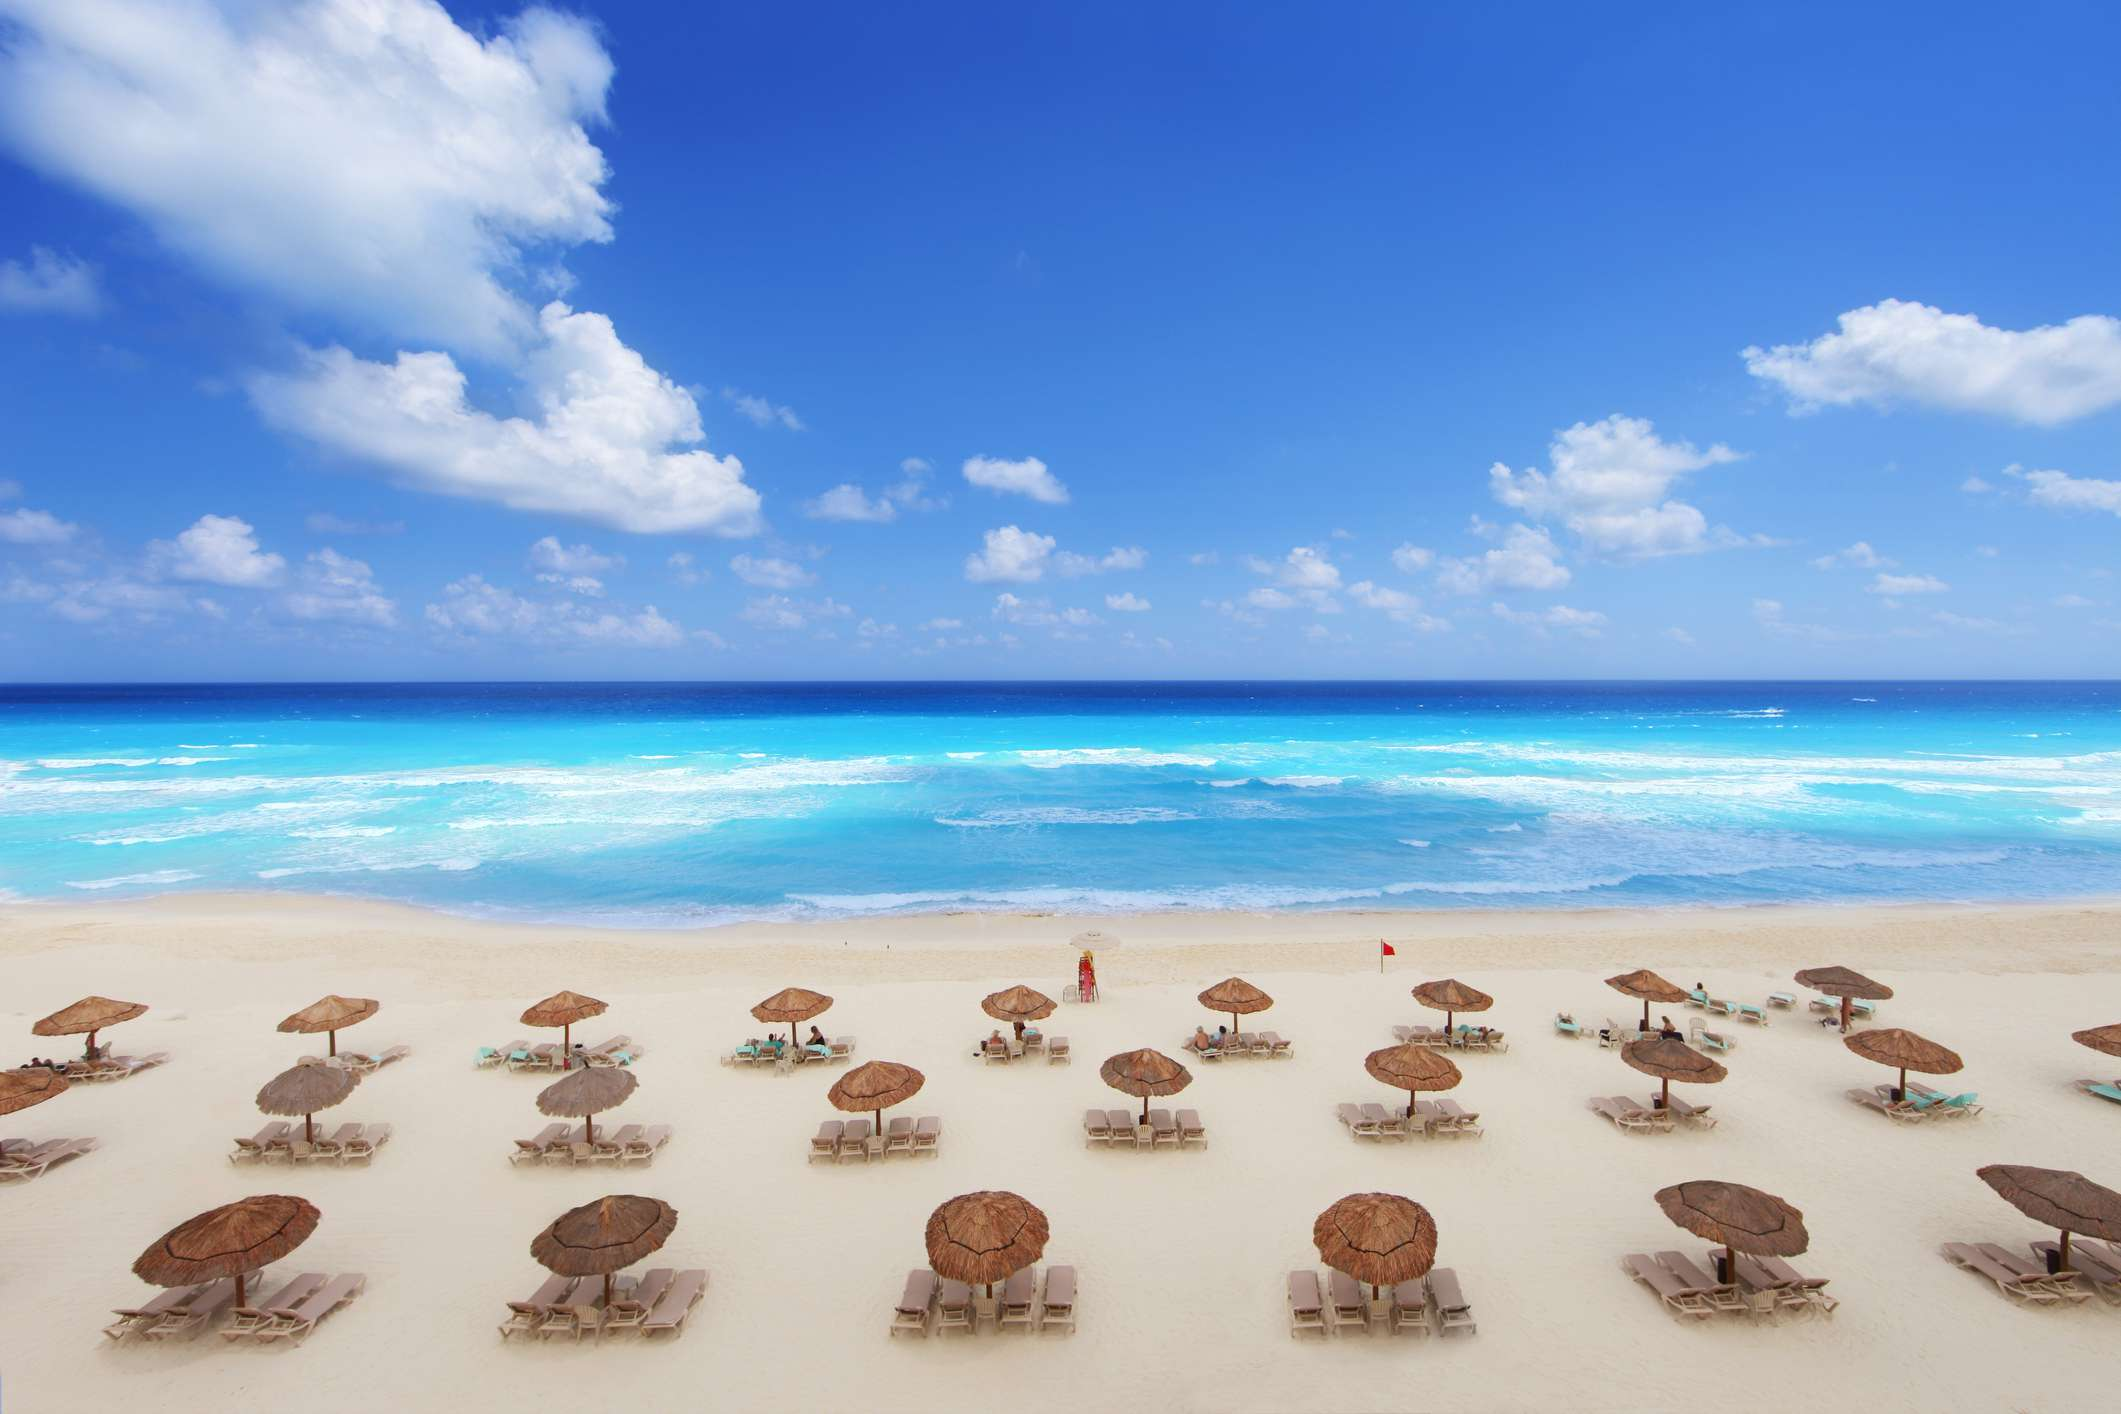 beach resort in Cancun, Mexico on a beautiful spring break day.